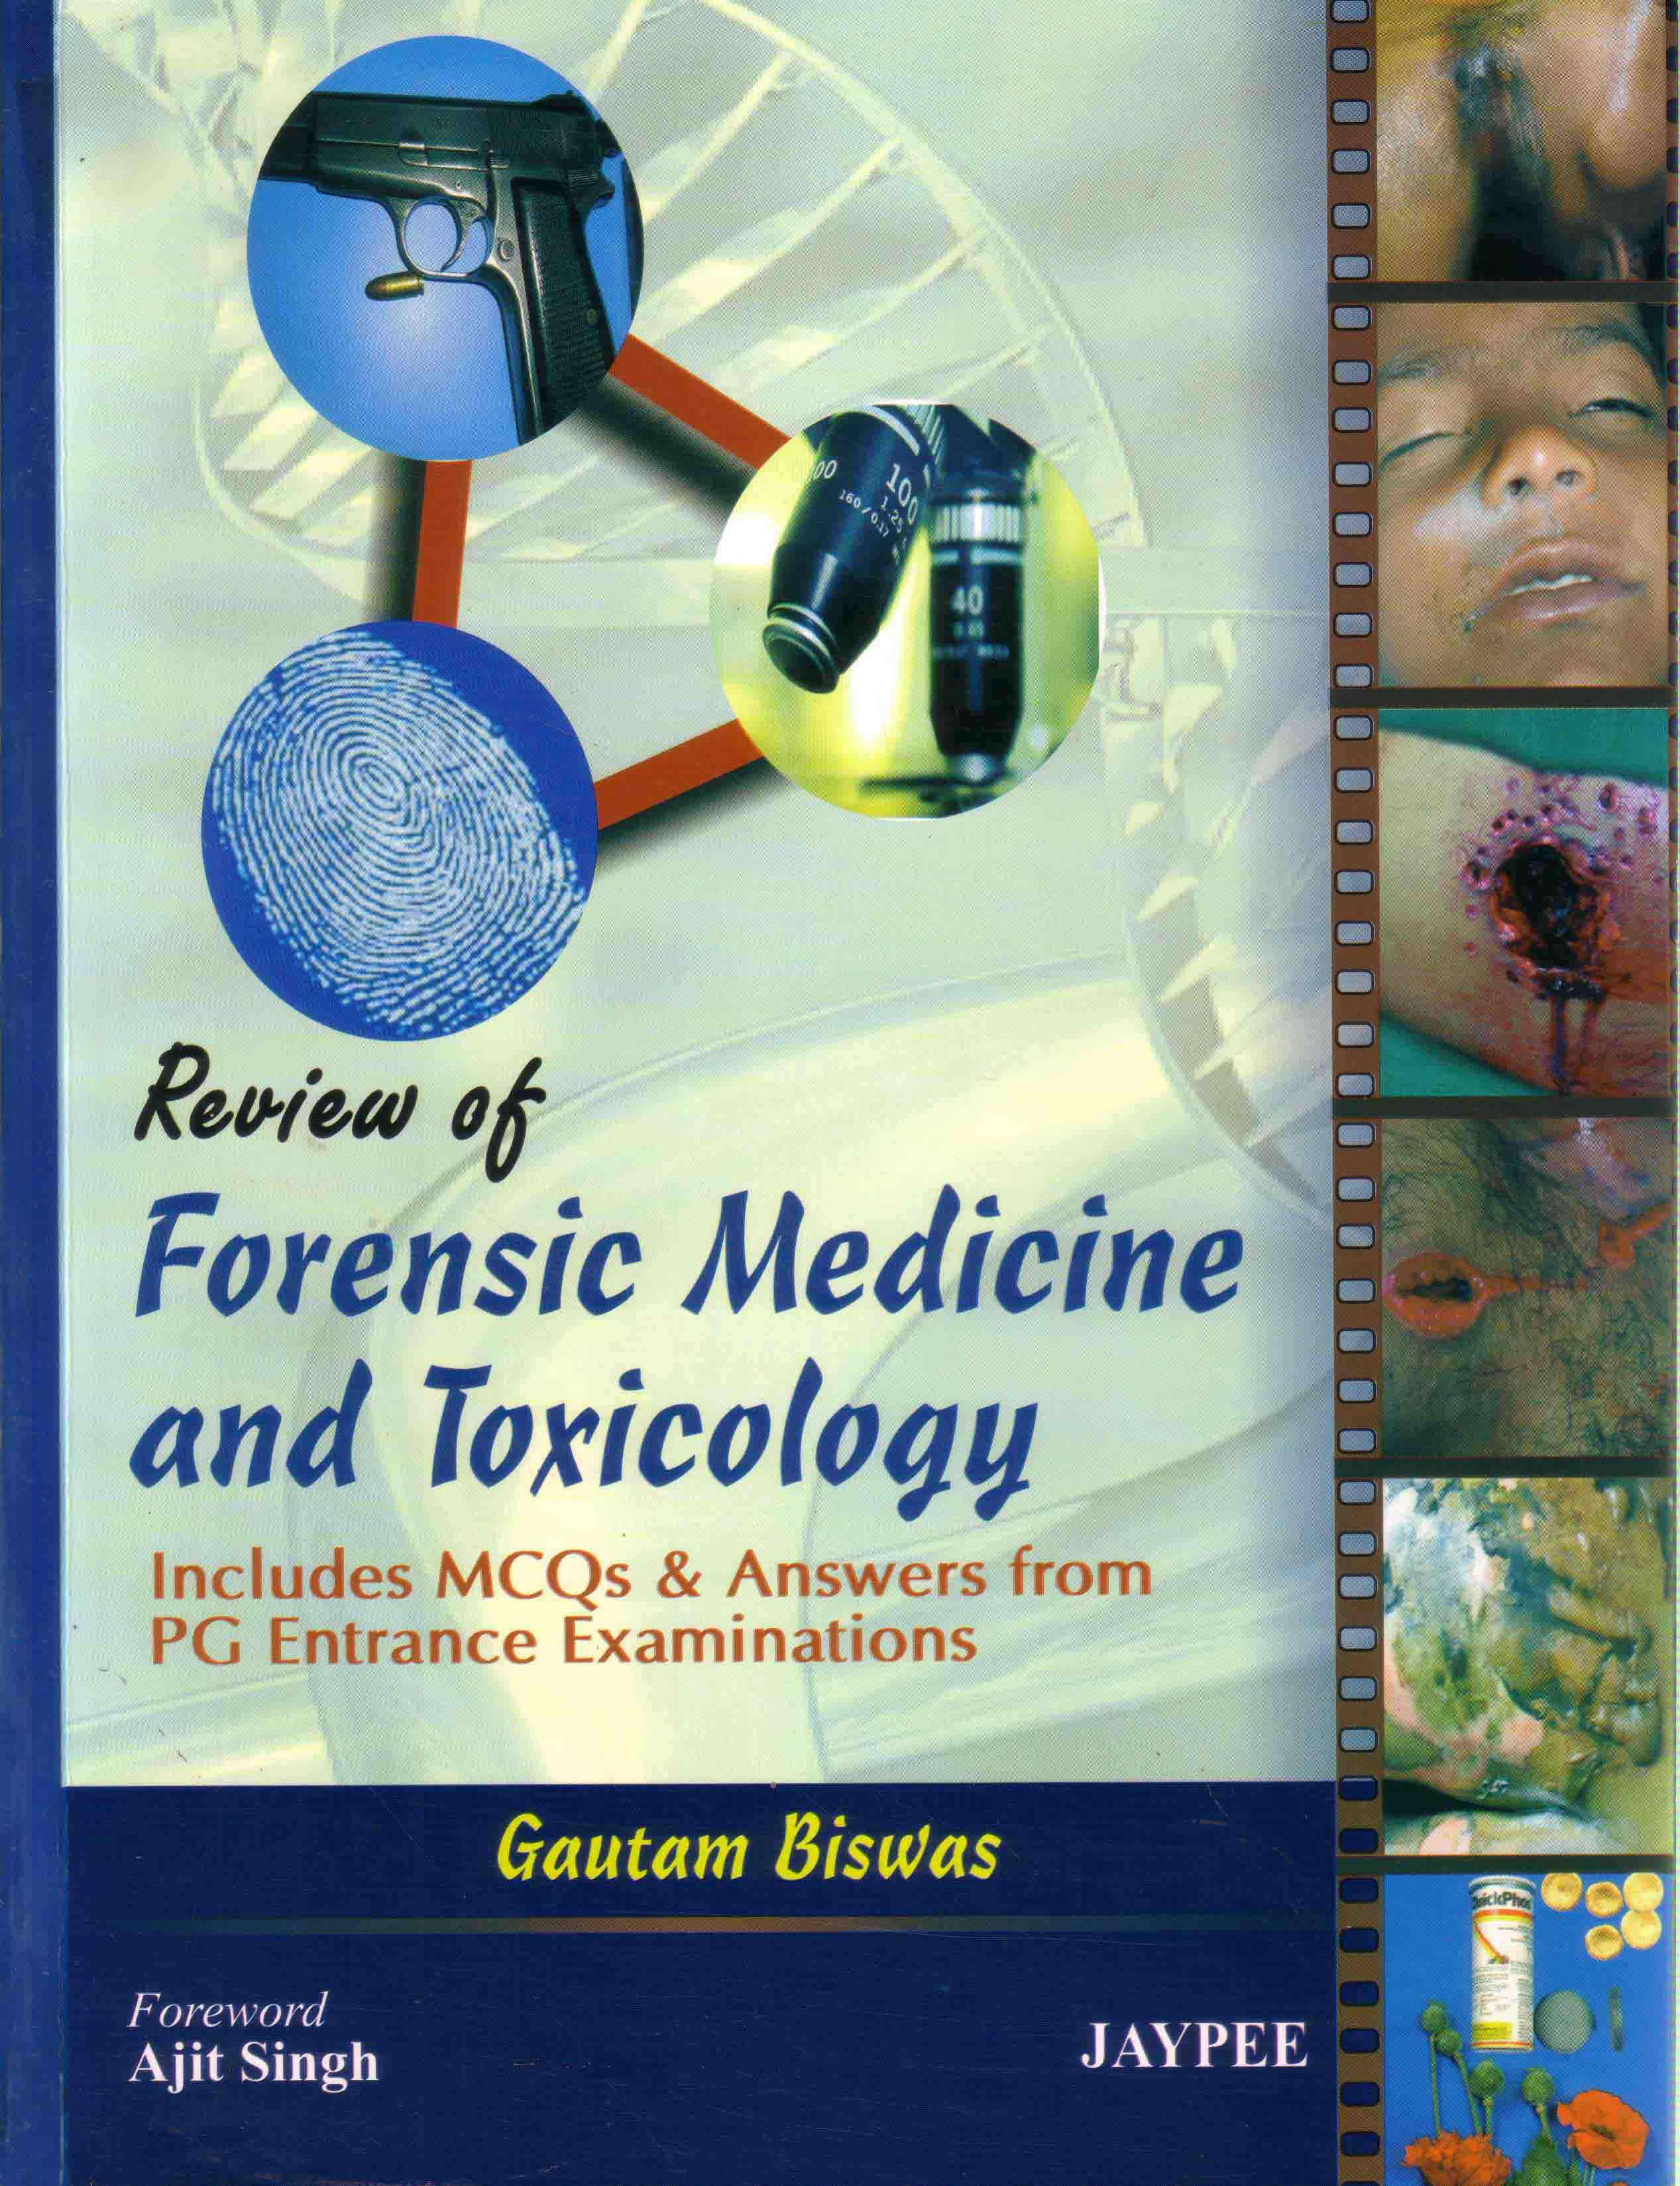 Technical Books on Forensic Science and Forensic Medicine: Anil